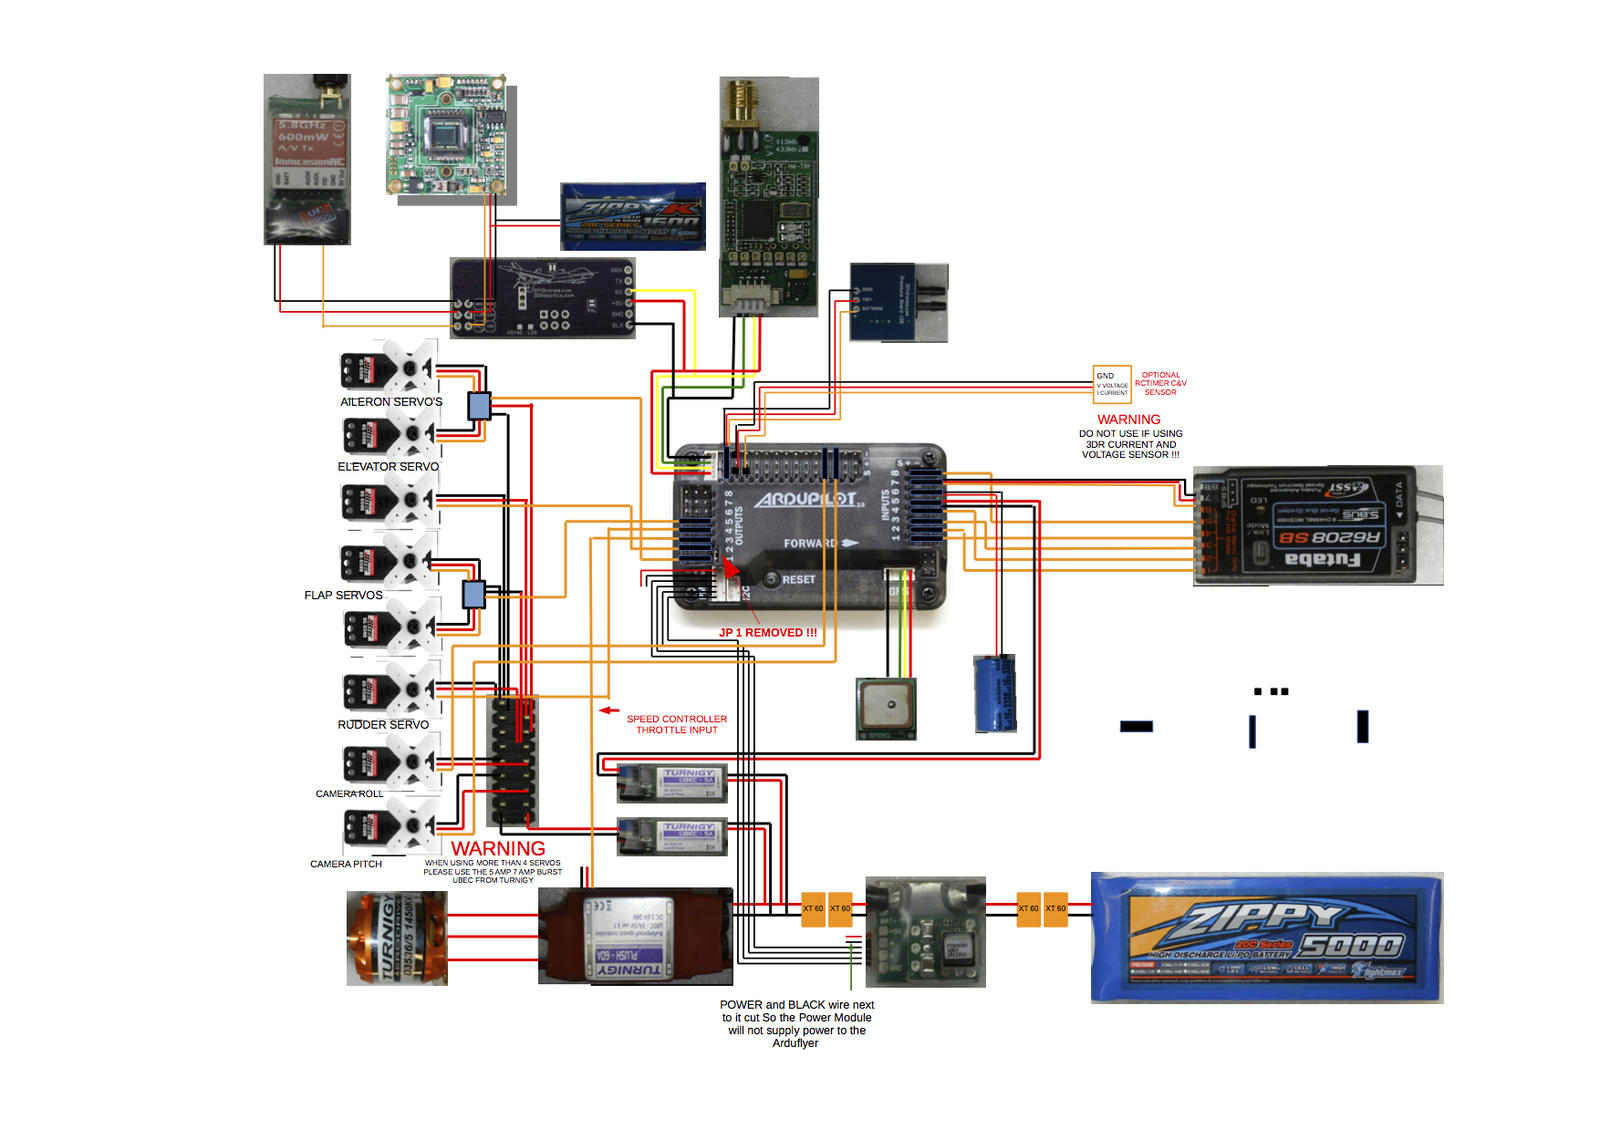 DIAGRAM] Fpv Wiring Diagram For 600mw 5 8 Transmitter FULL Version HD  Quality 8 Transmitter - ACCESSWIRINGSOLUTIONS.HOTEL-PATTON.FRaccesswiringsolutions.hotel-patton.fr